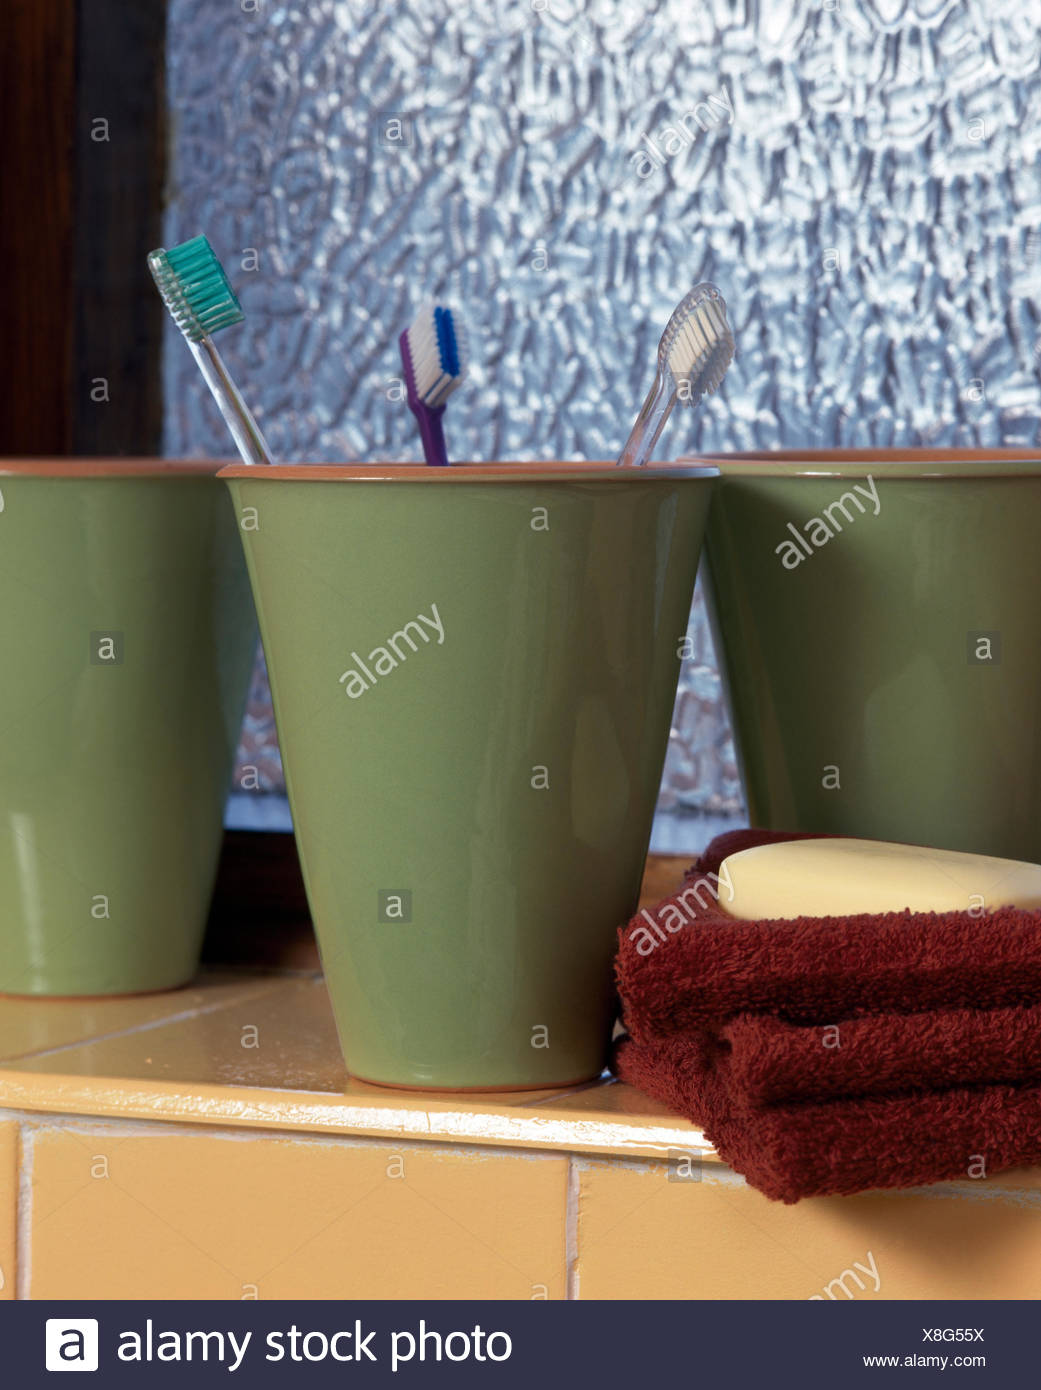 Close-up of green pottery beakers with toothbrushes - Stock Image